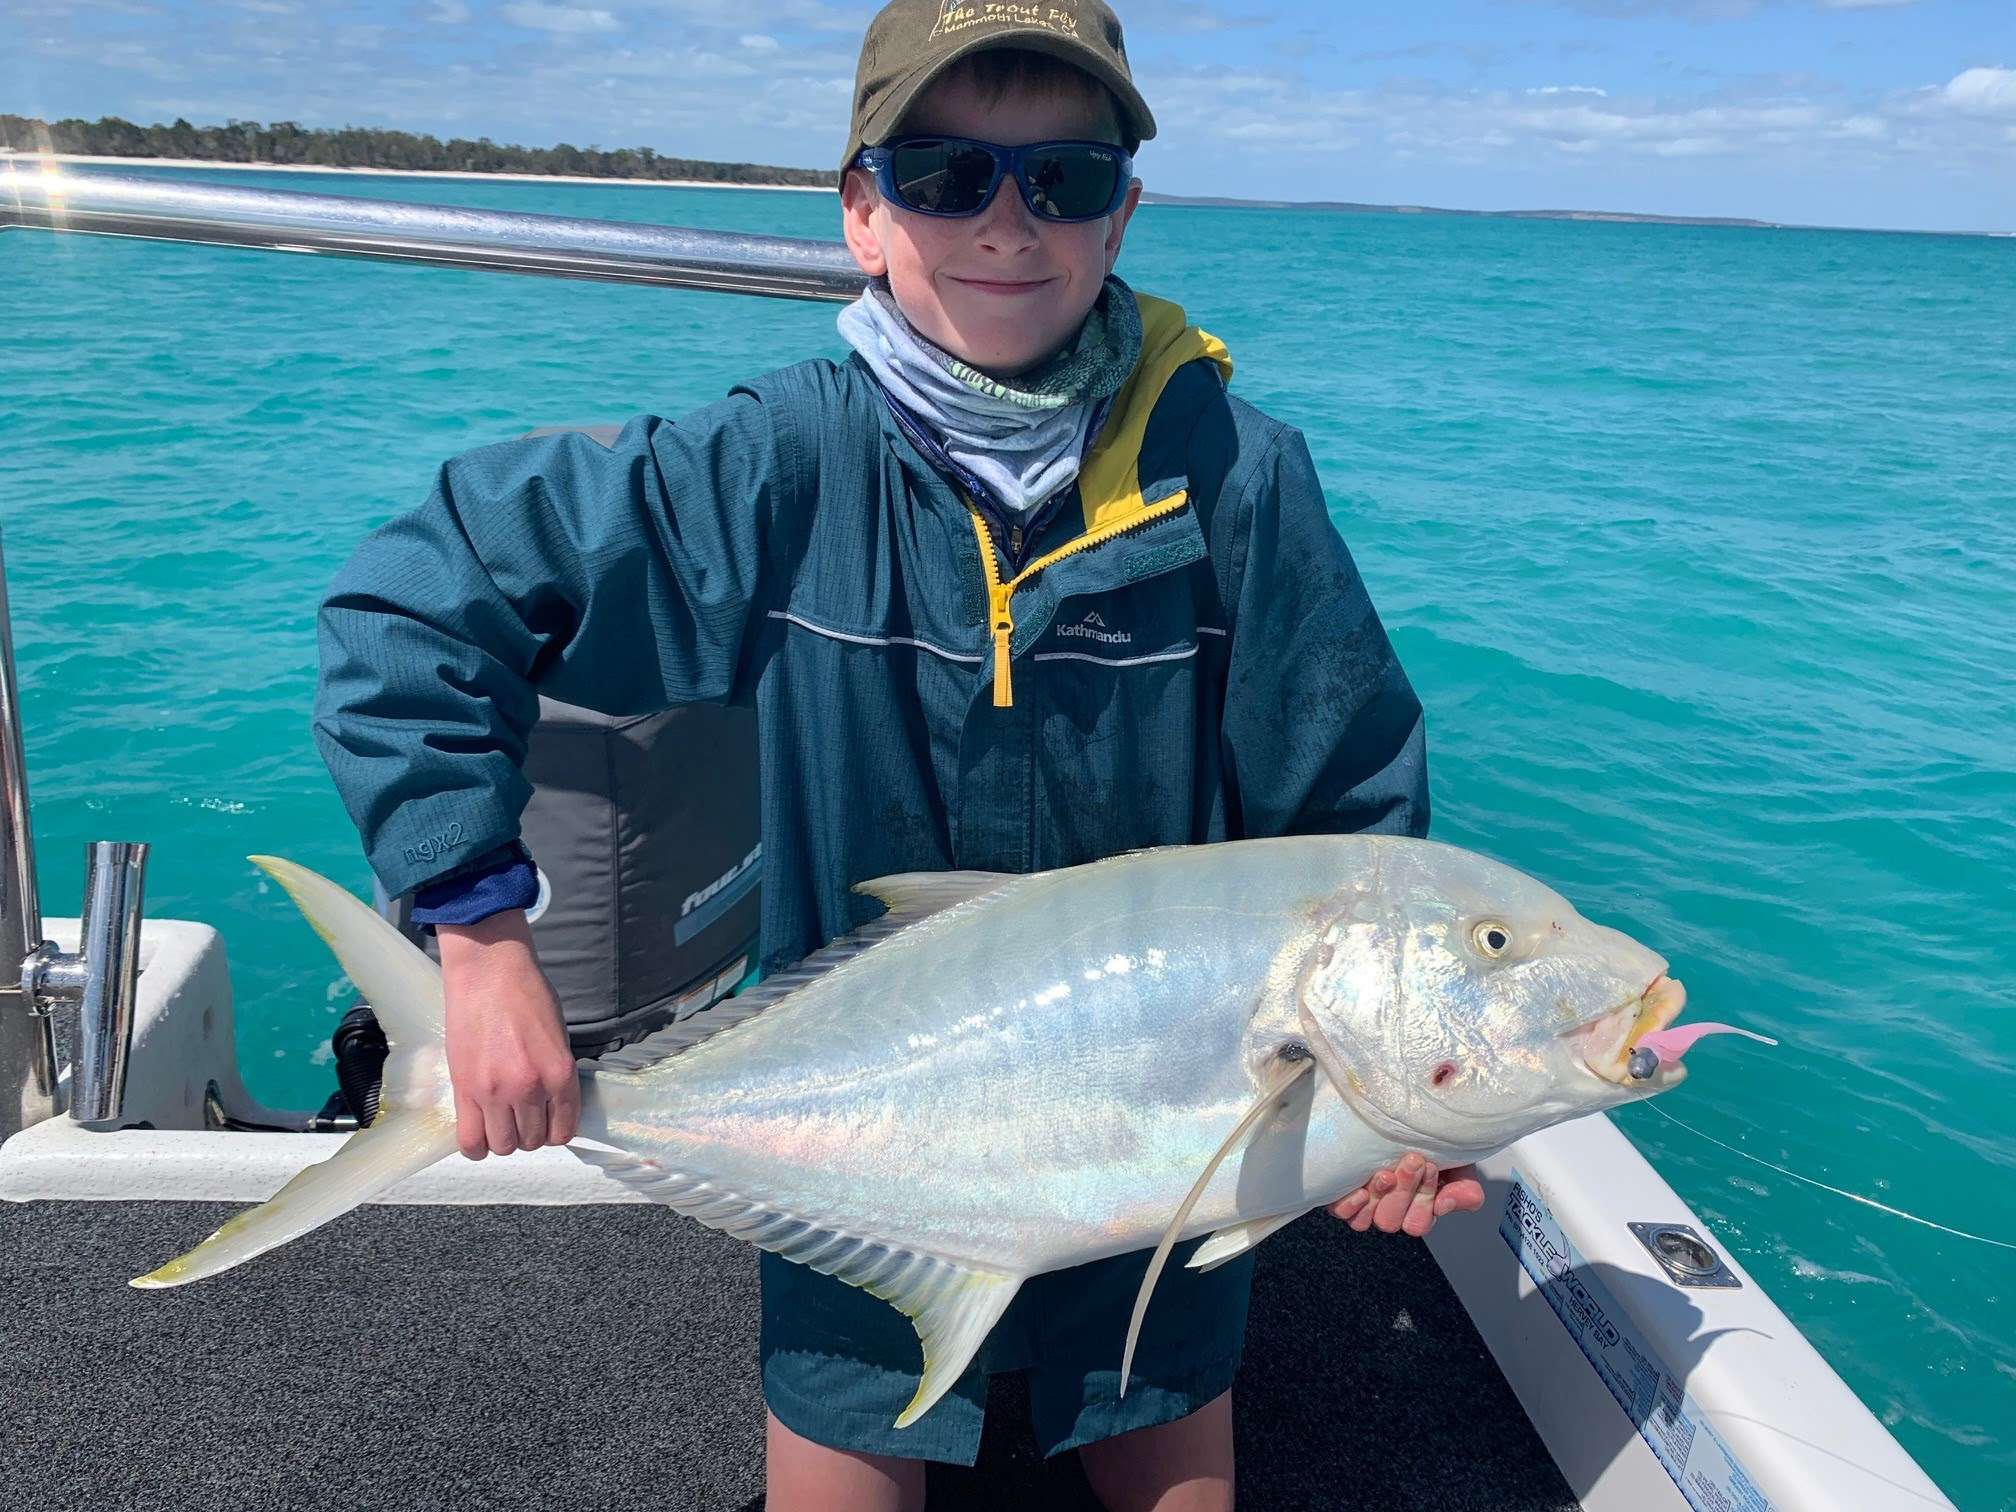 Cooper Holm with a solid golden trevally caught in shallow water.